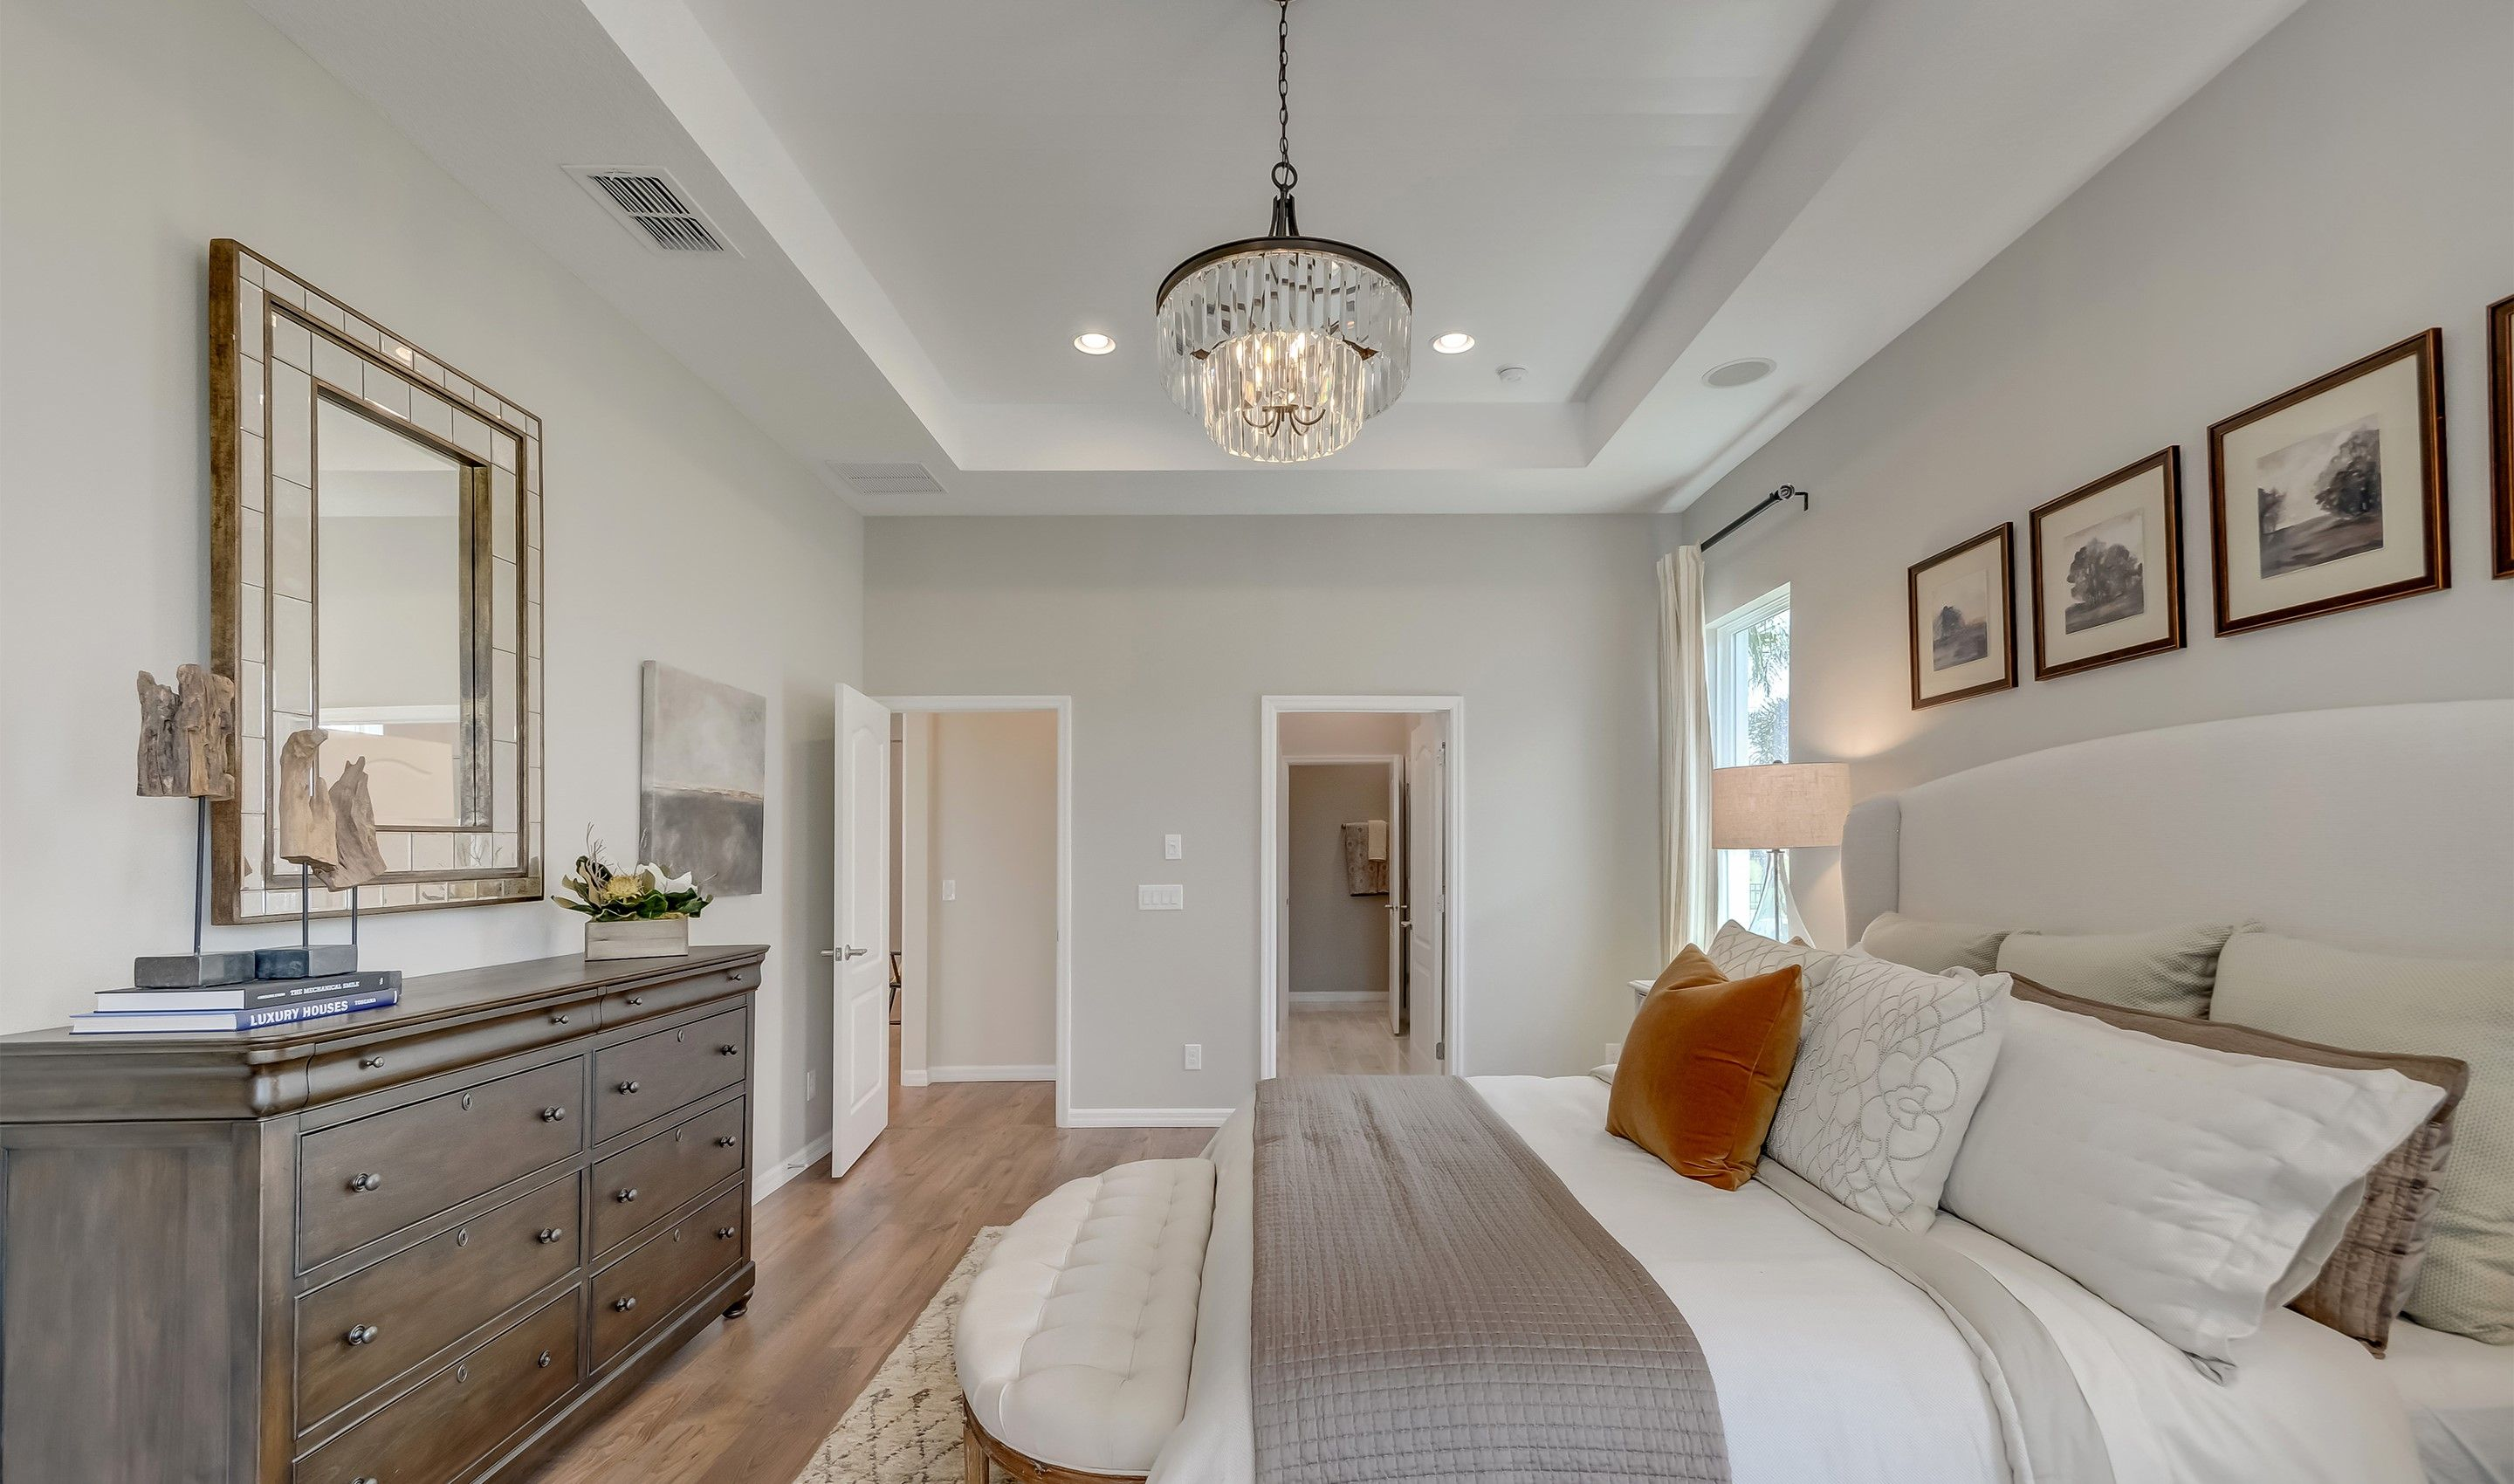 Bedroom featured in the Balfour By K. Hovnanian's® Four Seasons in Orlando, FL